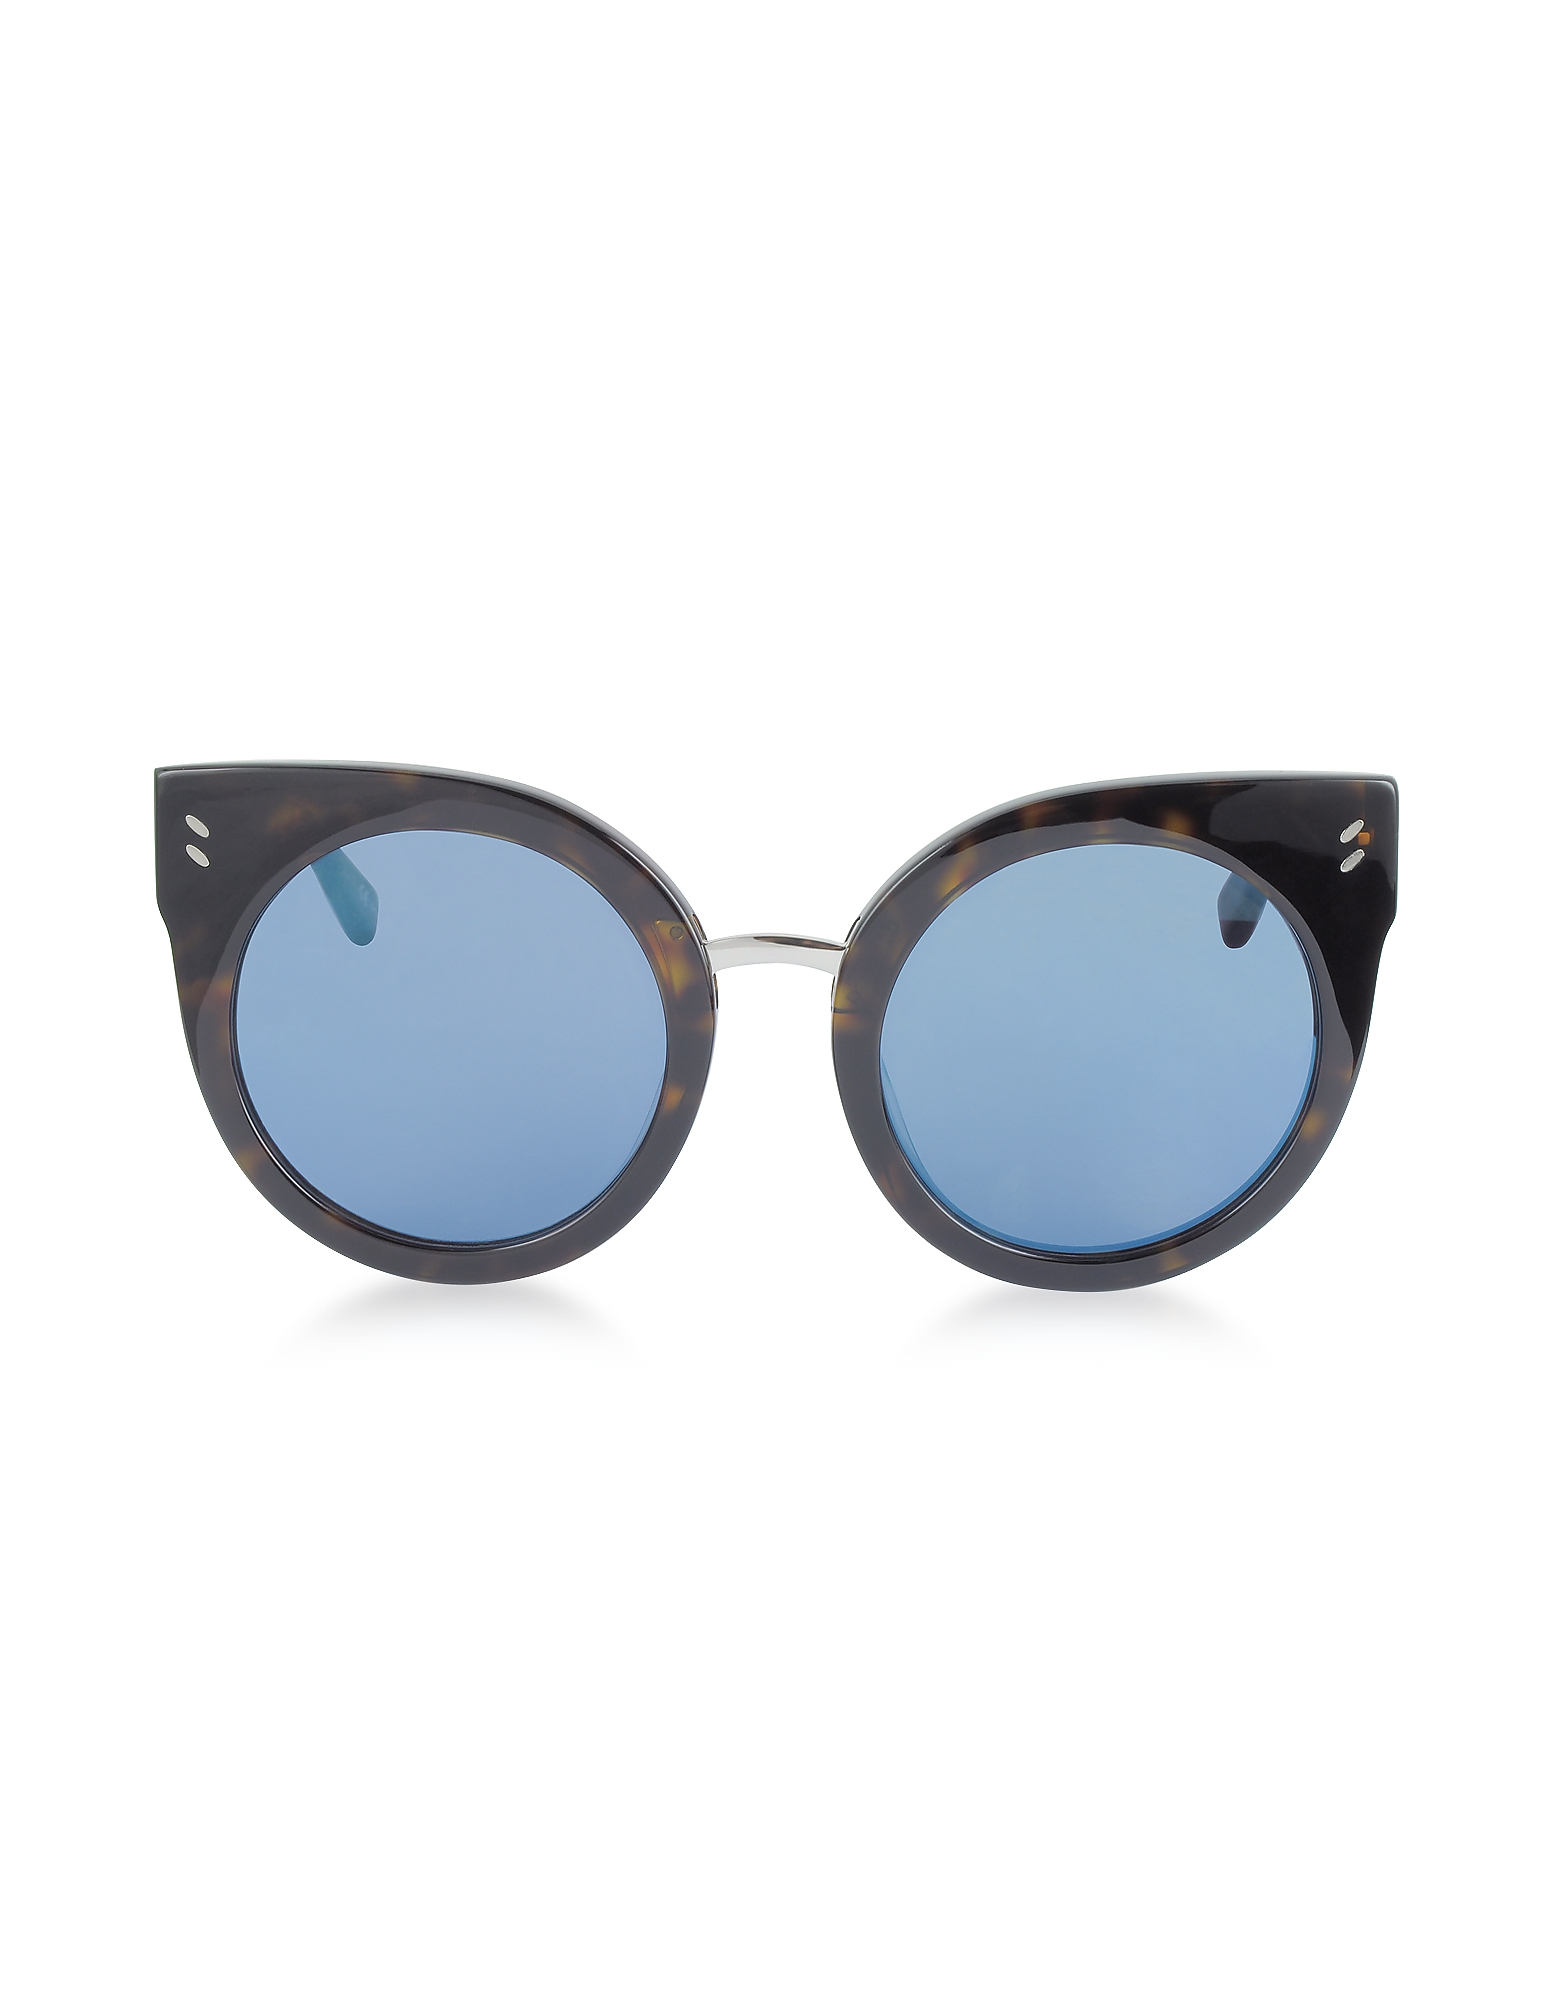 Stella McCartney Sunglasses, SC0036S Round Cat Eye Acetate Women's Sunglasses